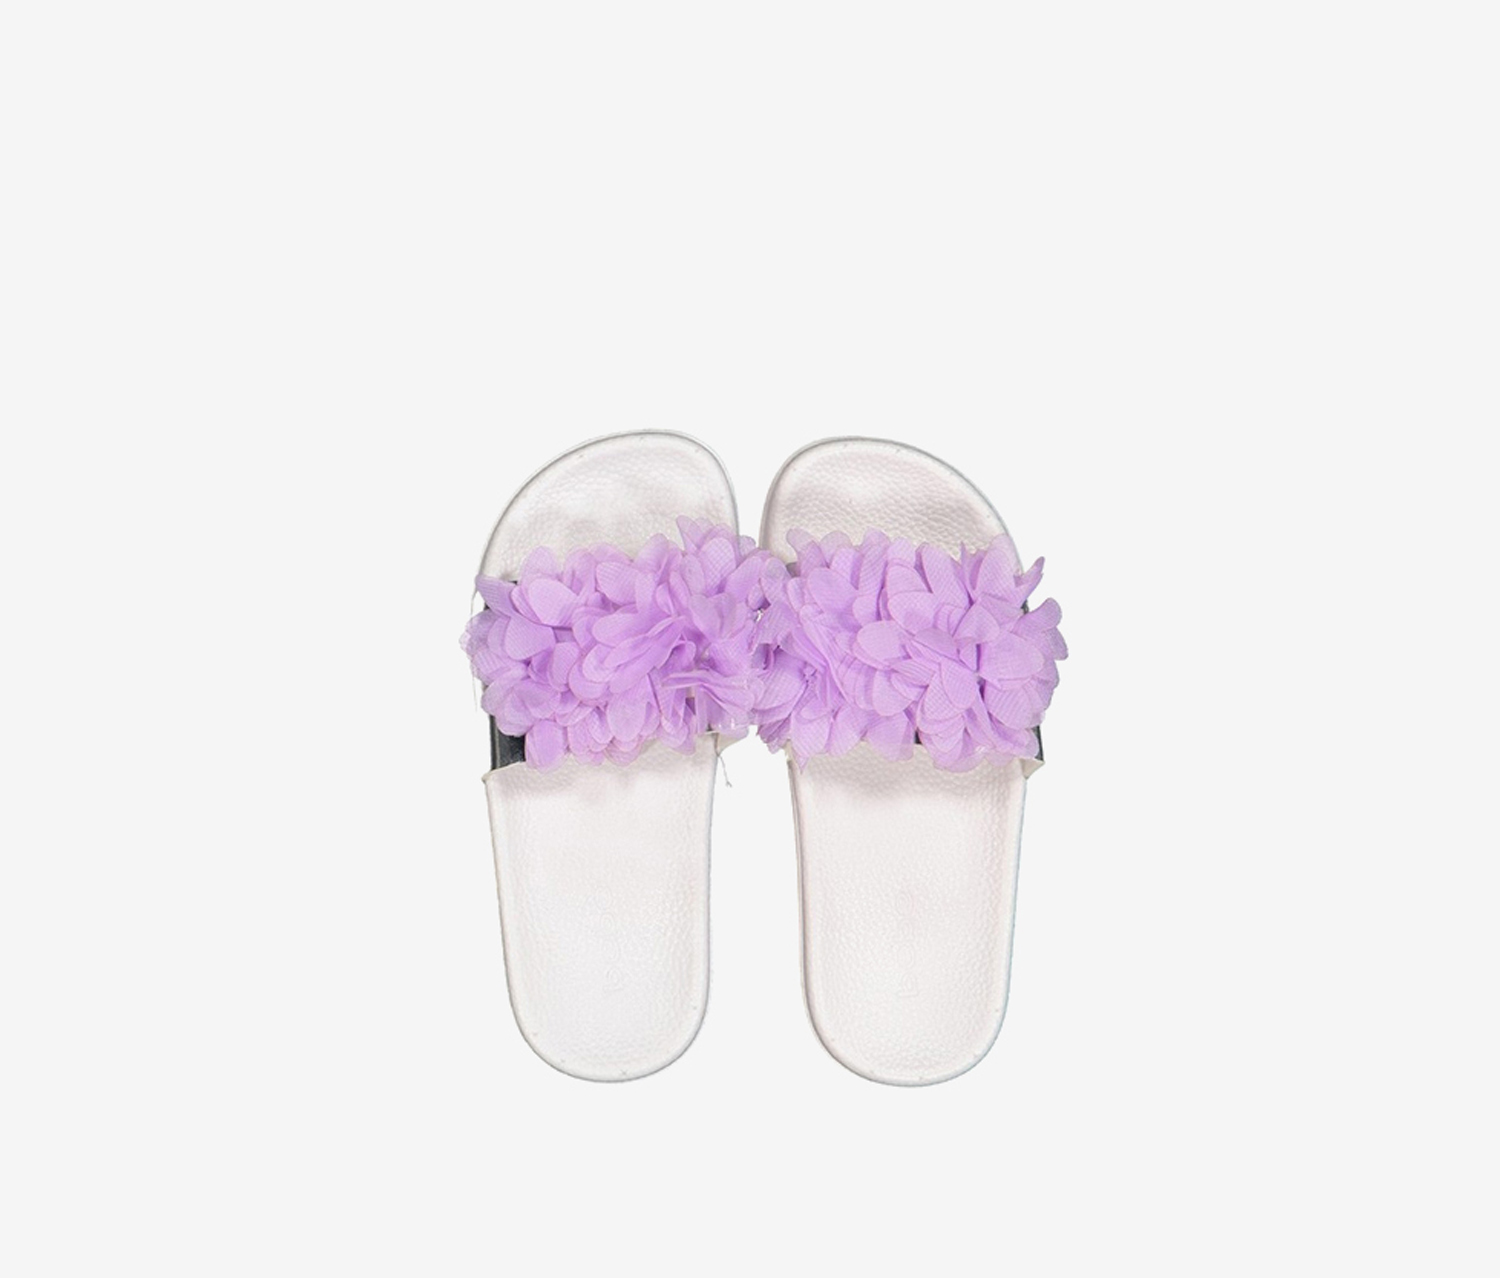 bebe Kid's Floral Slippers, Purple White